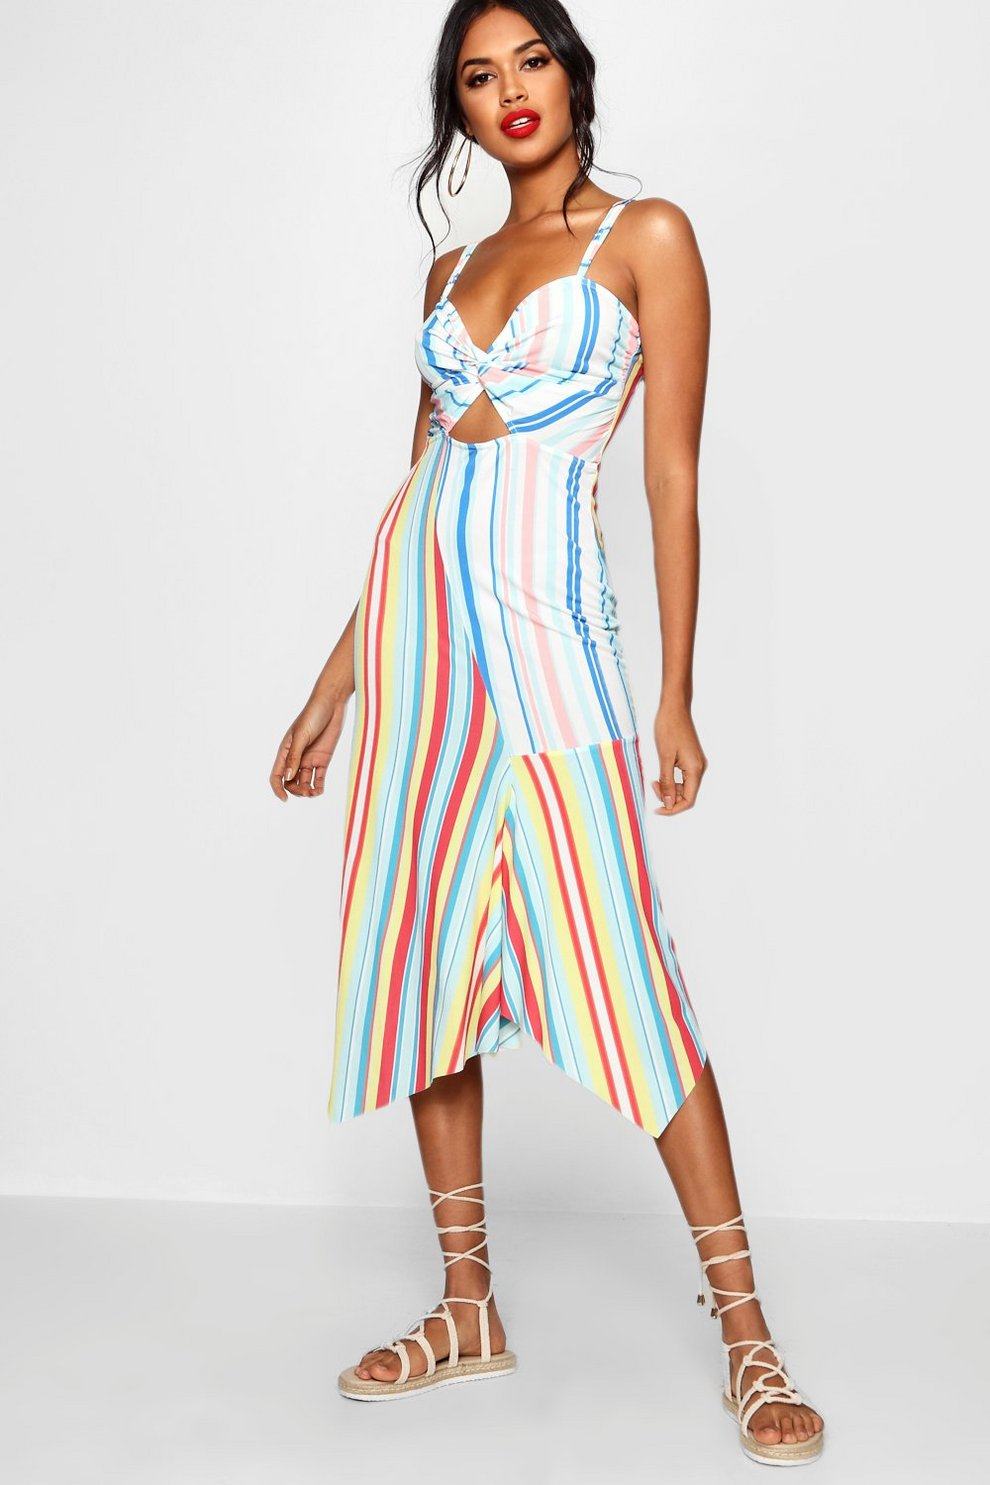 Boohoo Knot front Asymmetric Hem Midi Dress Best Selling Fast Shipping Outlet Discount Authentic Outlet Pre Order Free Shipping Visit New 6waW16zEPb